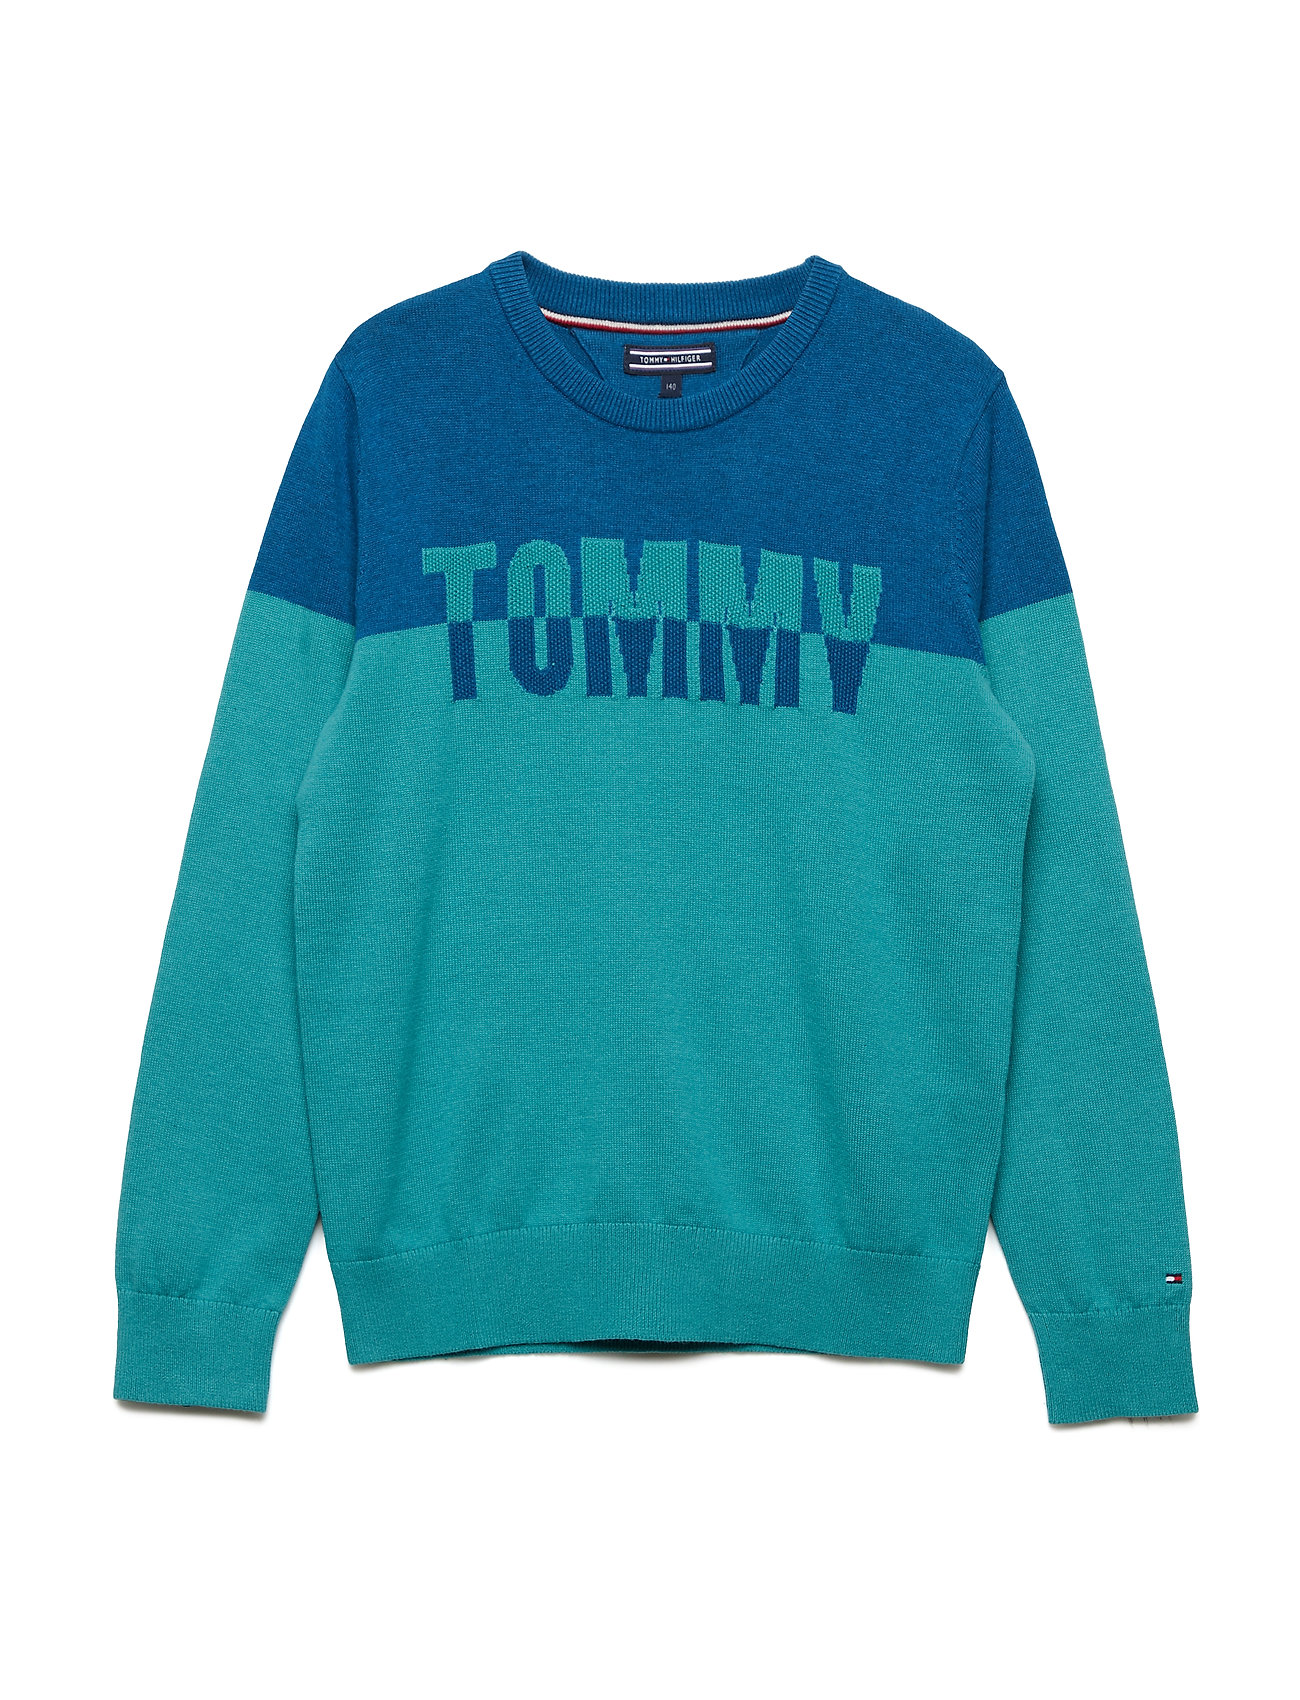 Tommy Hilfiger TH COLORBLOCK CREW N - GREEN-BLUE SLATE/BLUE SAPPHIRE